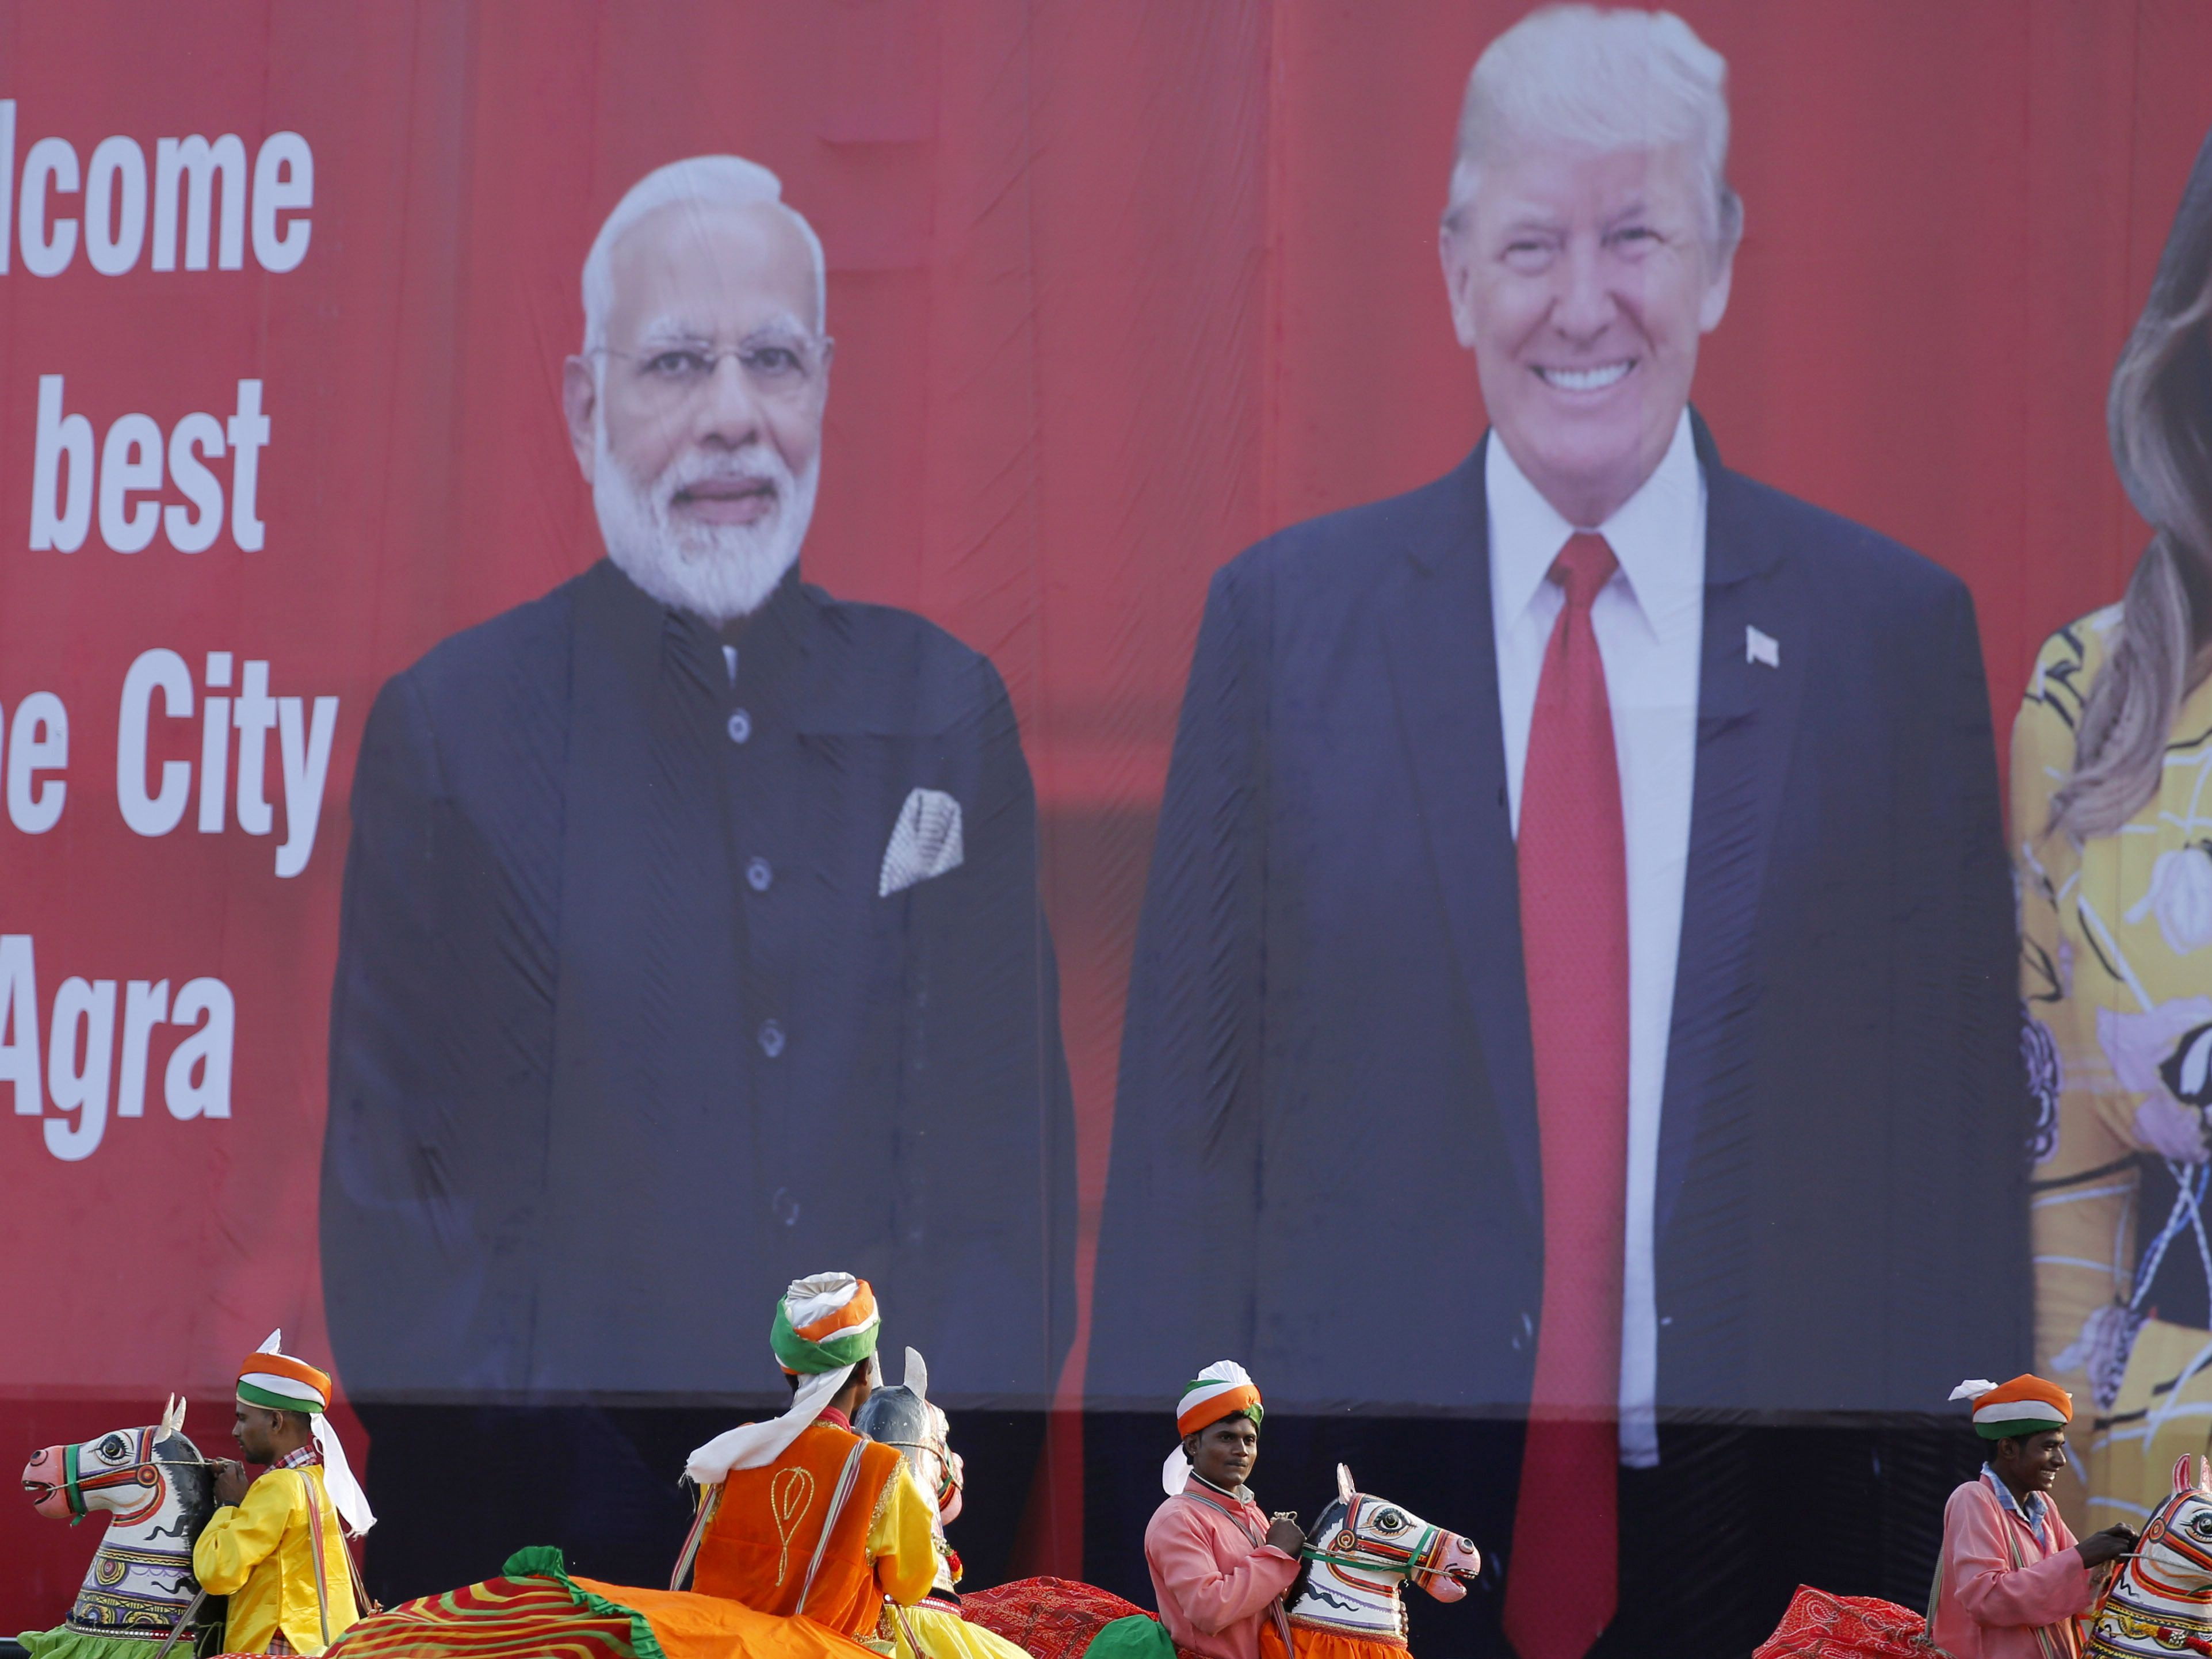 Passage to India: Trump ready for warm embrace, adulation